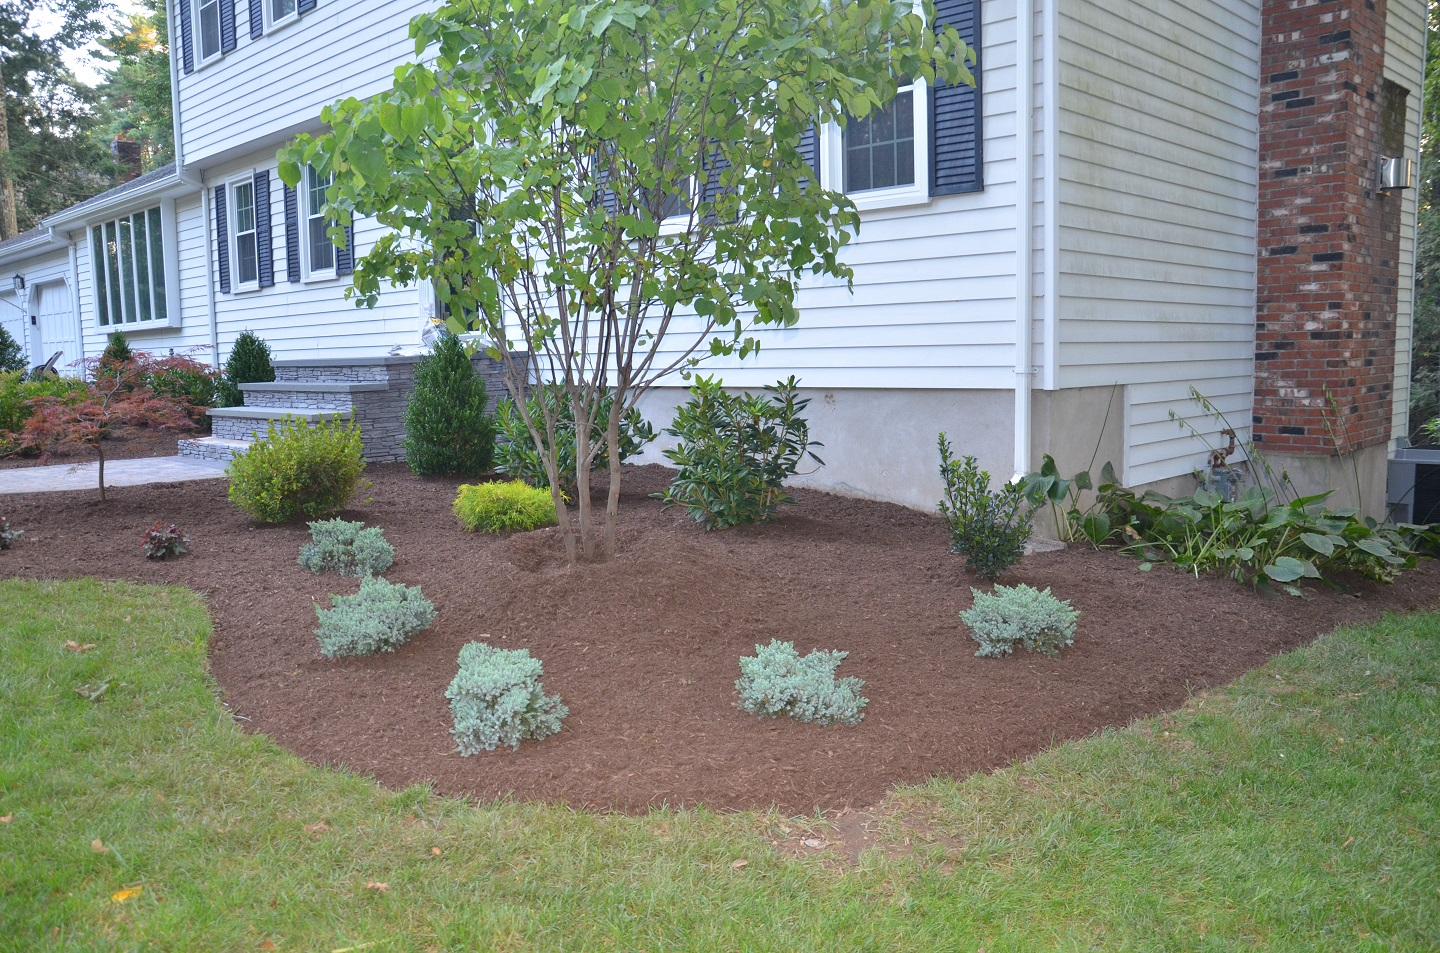 Landscape design company in Newington, CT